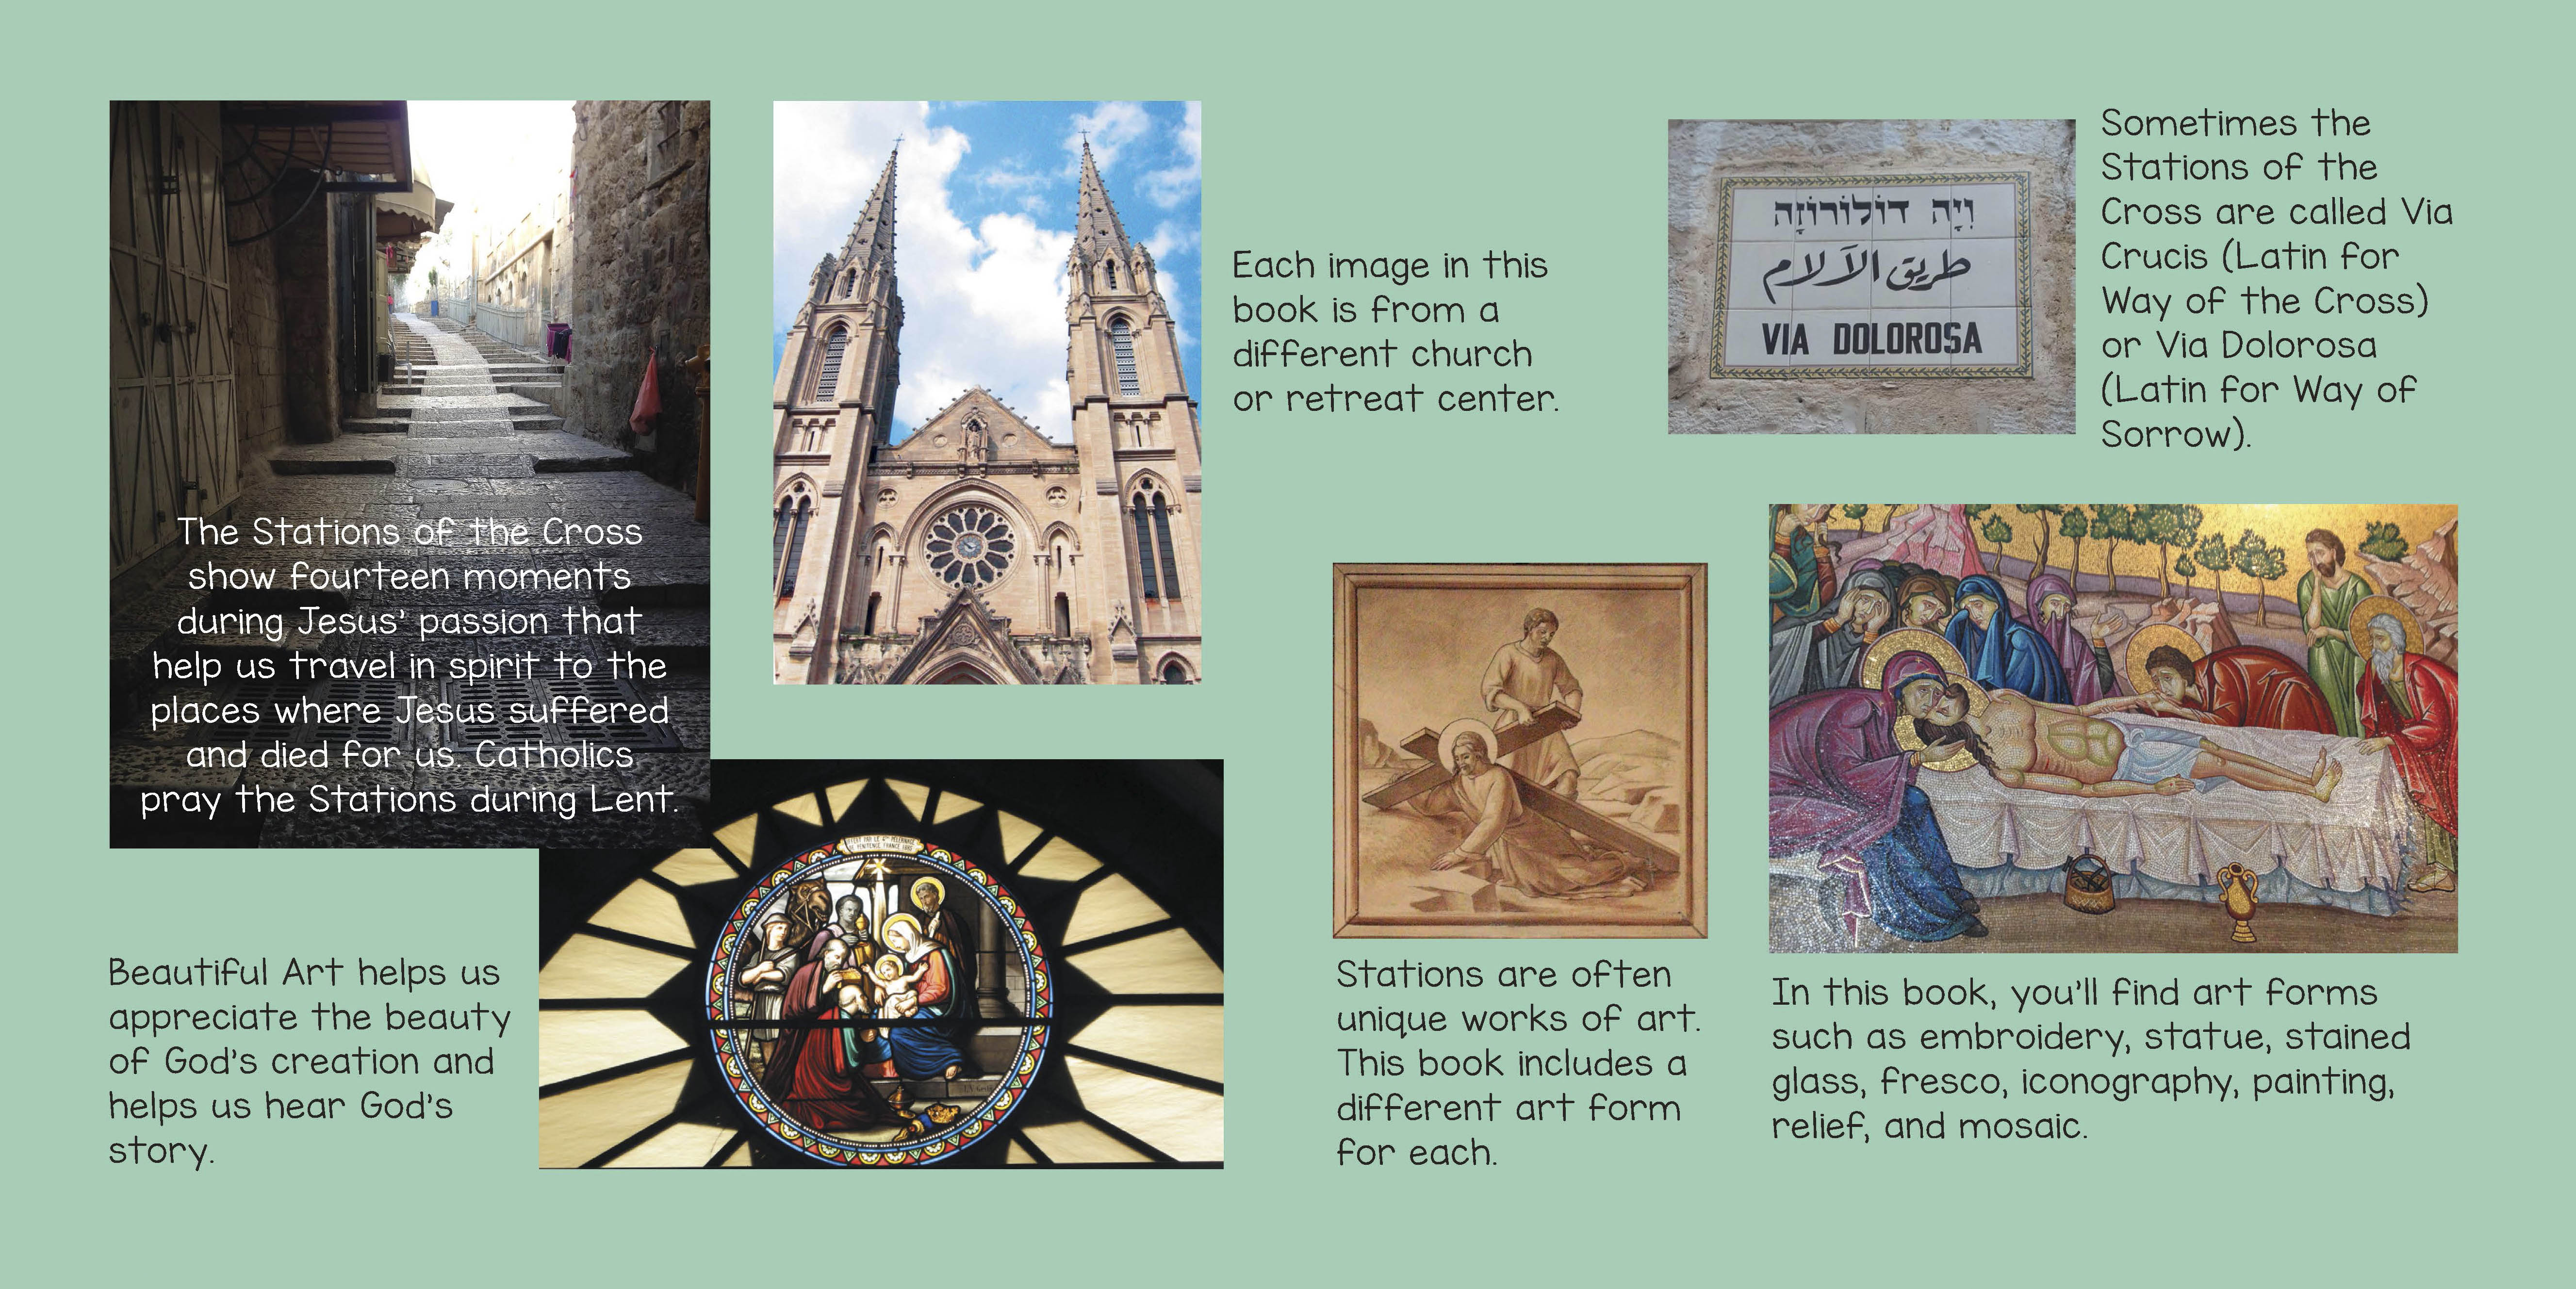 Stations of the Cross have a long history in the Catholic Church.